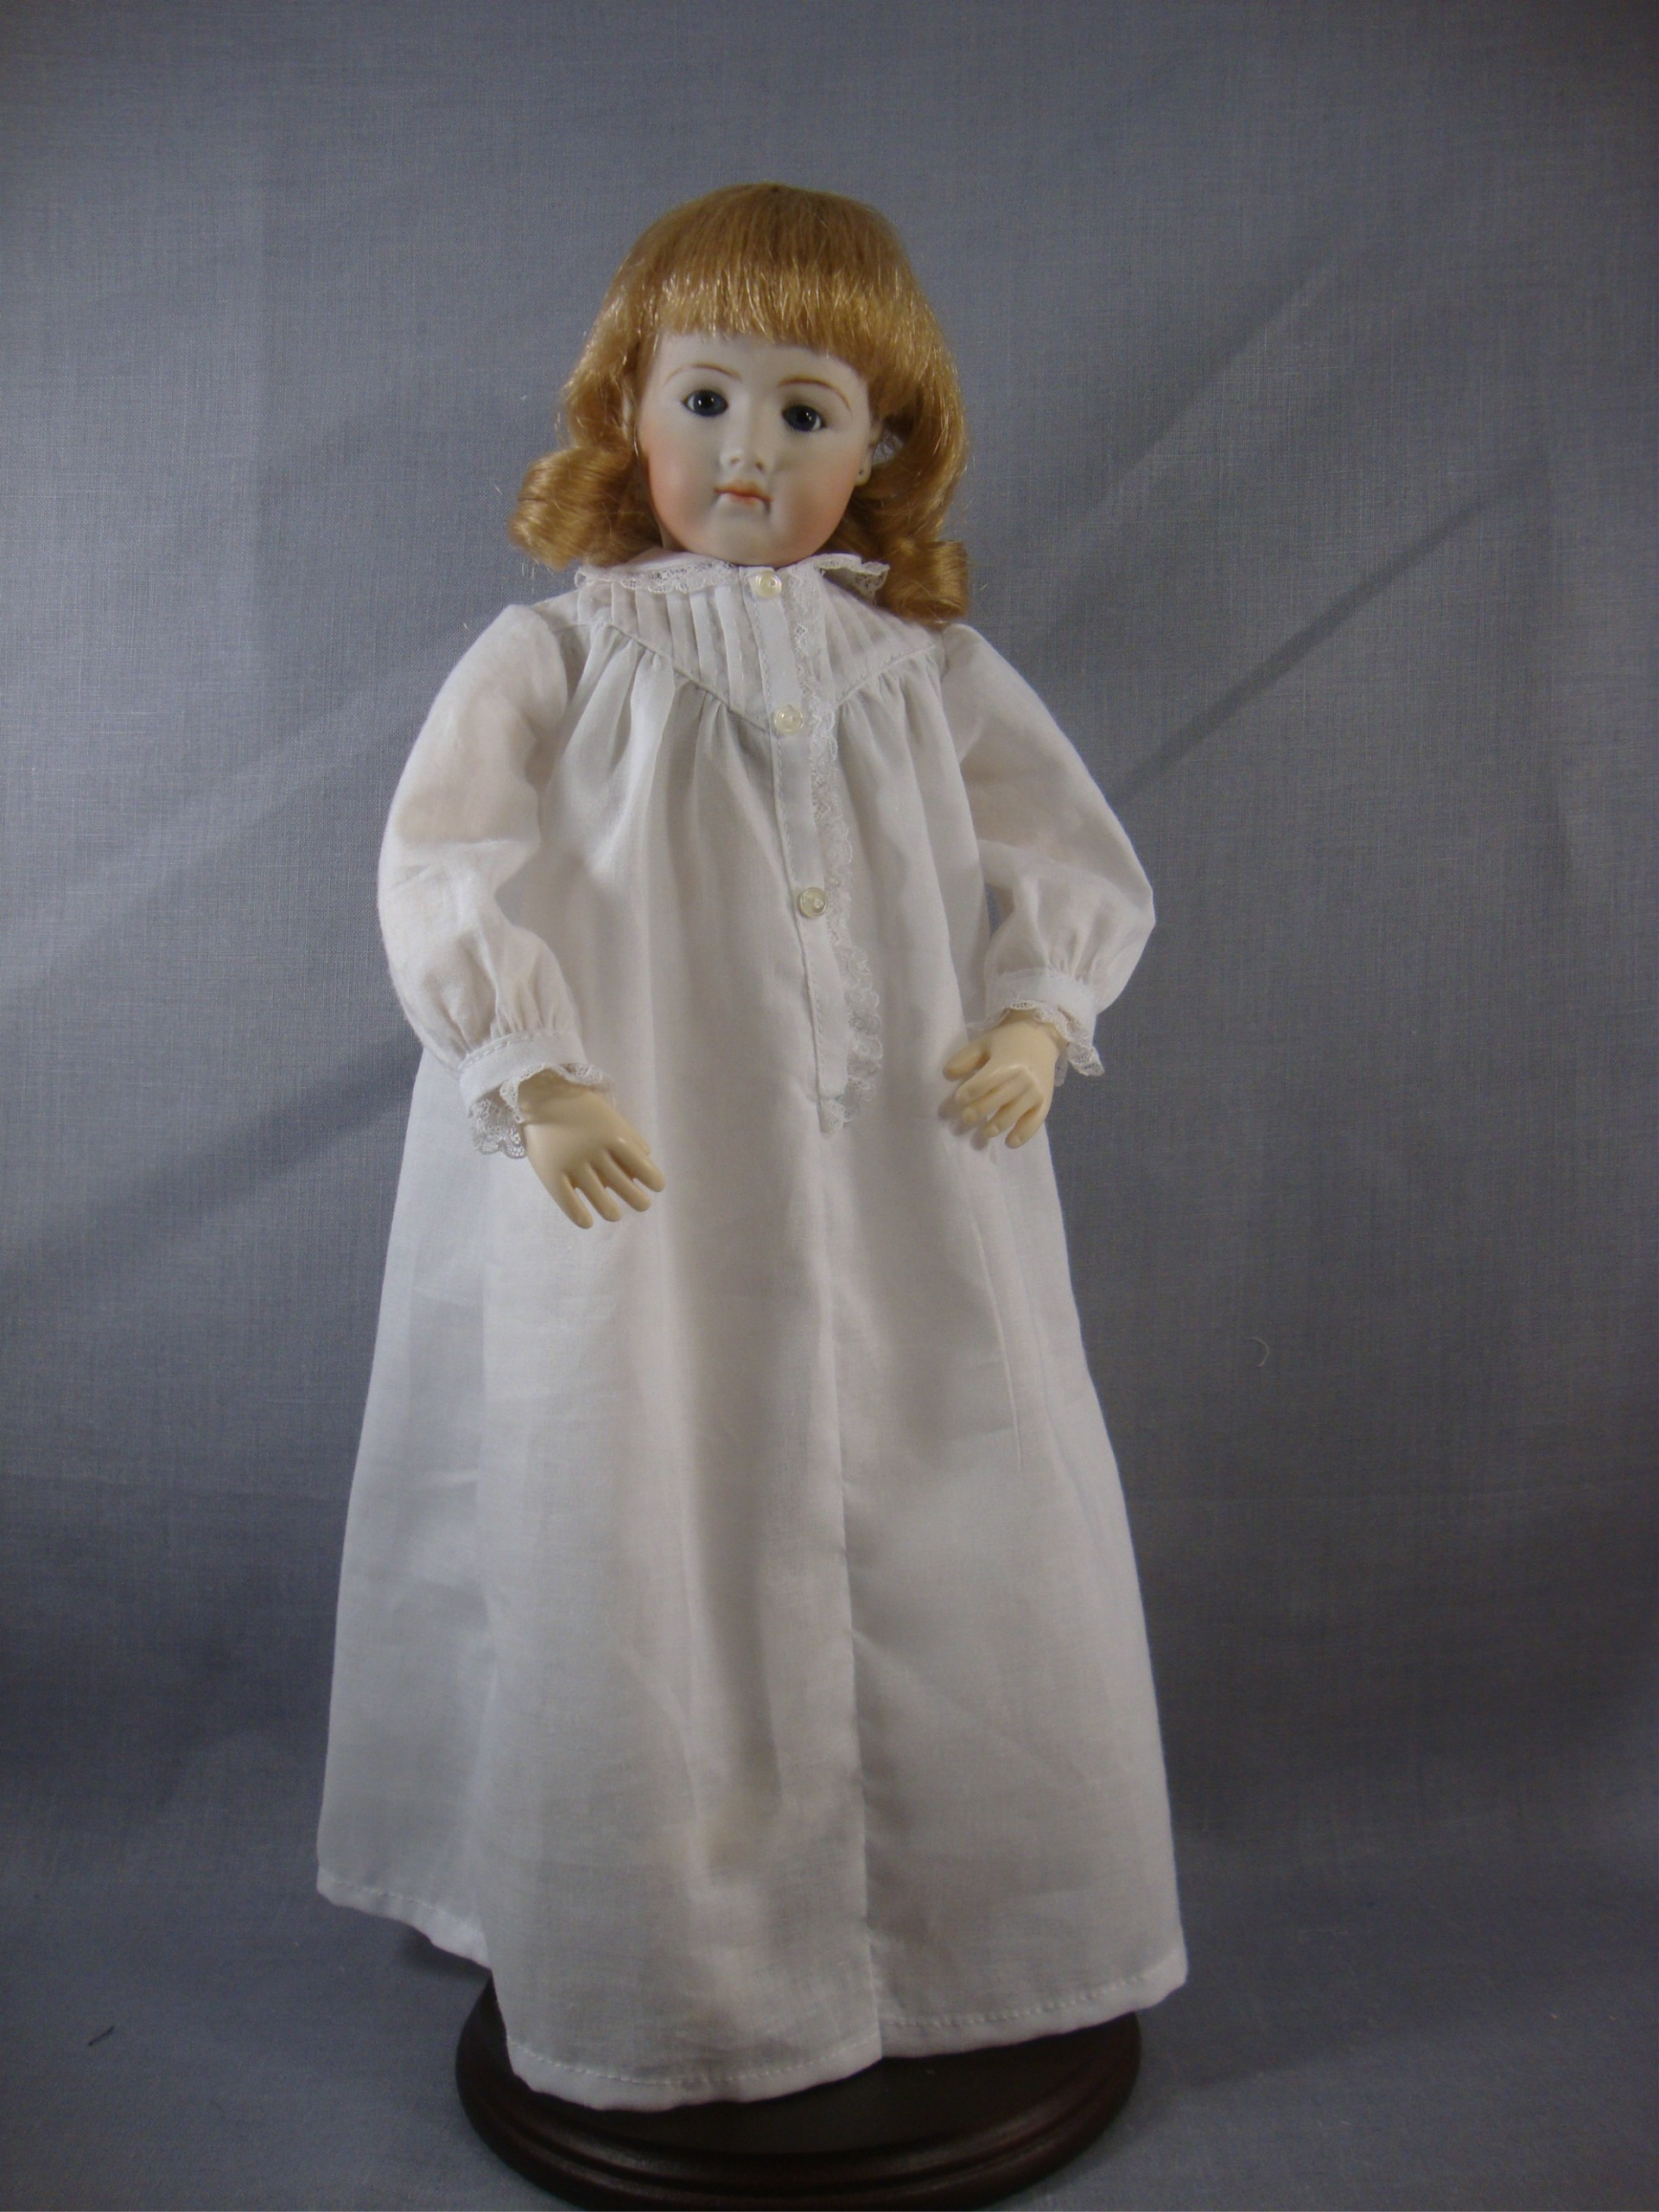 Robe and Long Sleeved Nightgown Pattern for 12.5